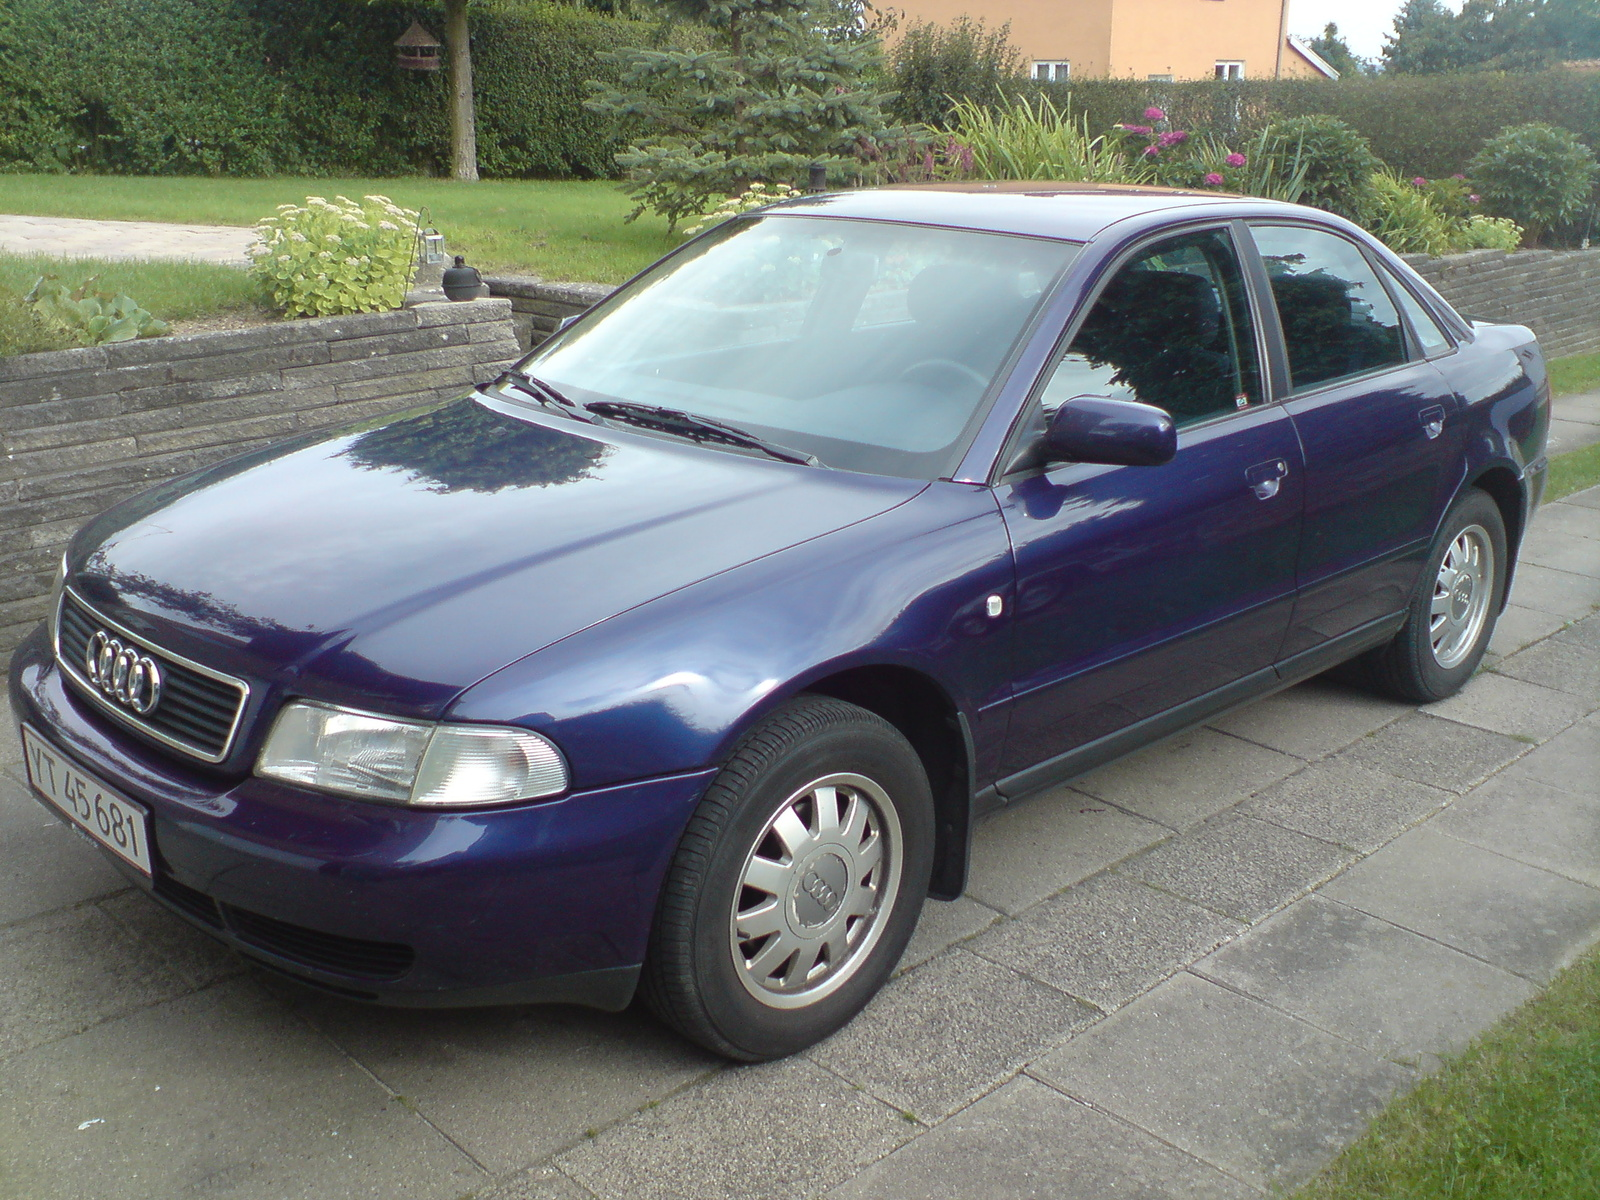 1998 Audi A4 4 Dr 1.8T Turbo Sedan picture